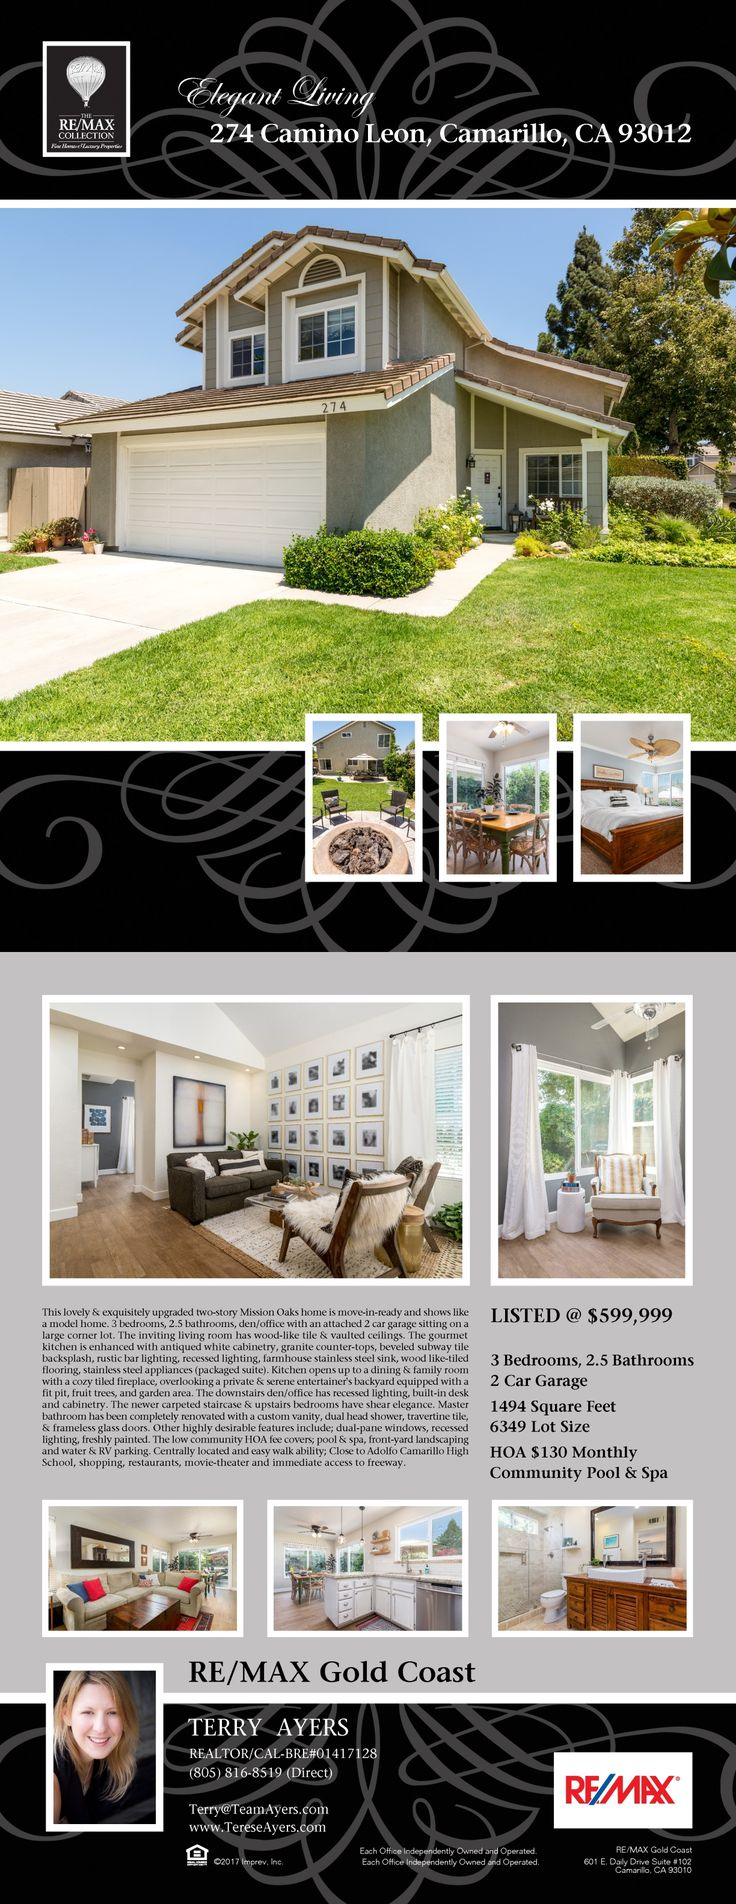 274 Camino Leon, Camarillo, CA 93012 - Call Terry Ayers, Realtor with Re/Max Gold Coast Realtors 805-816-8519 to schedule a showing today!